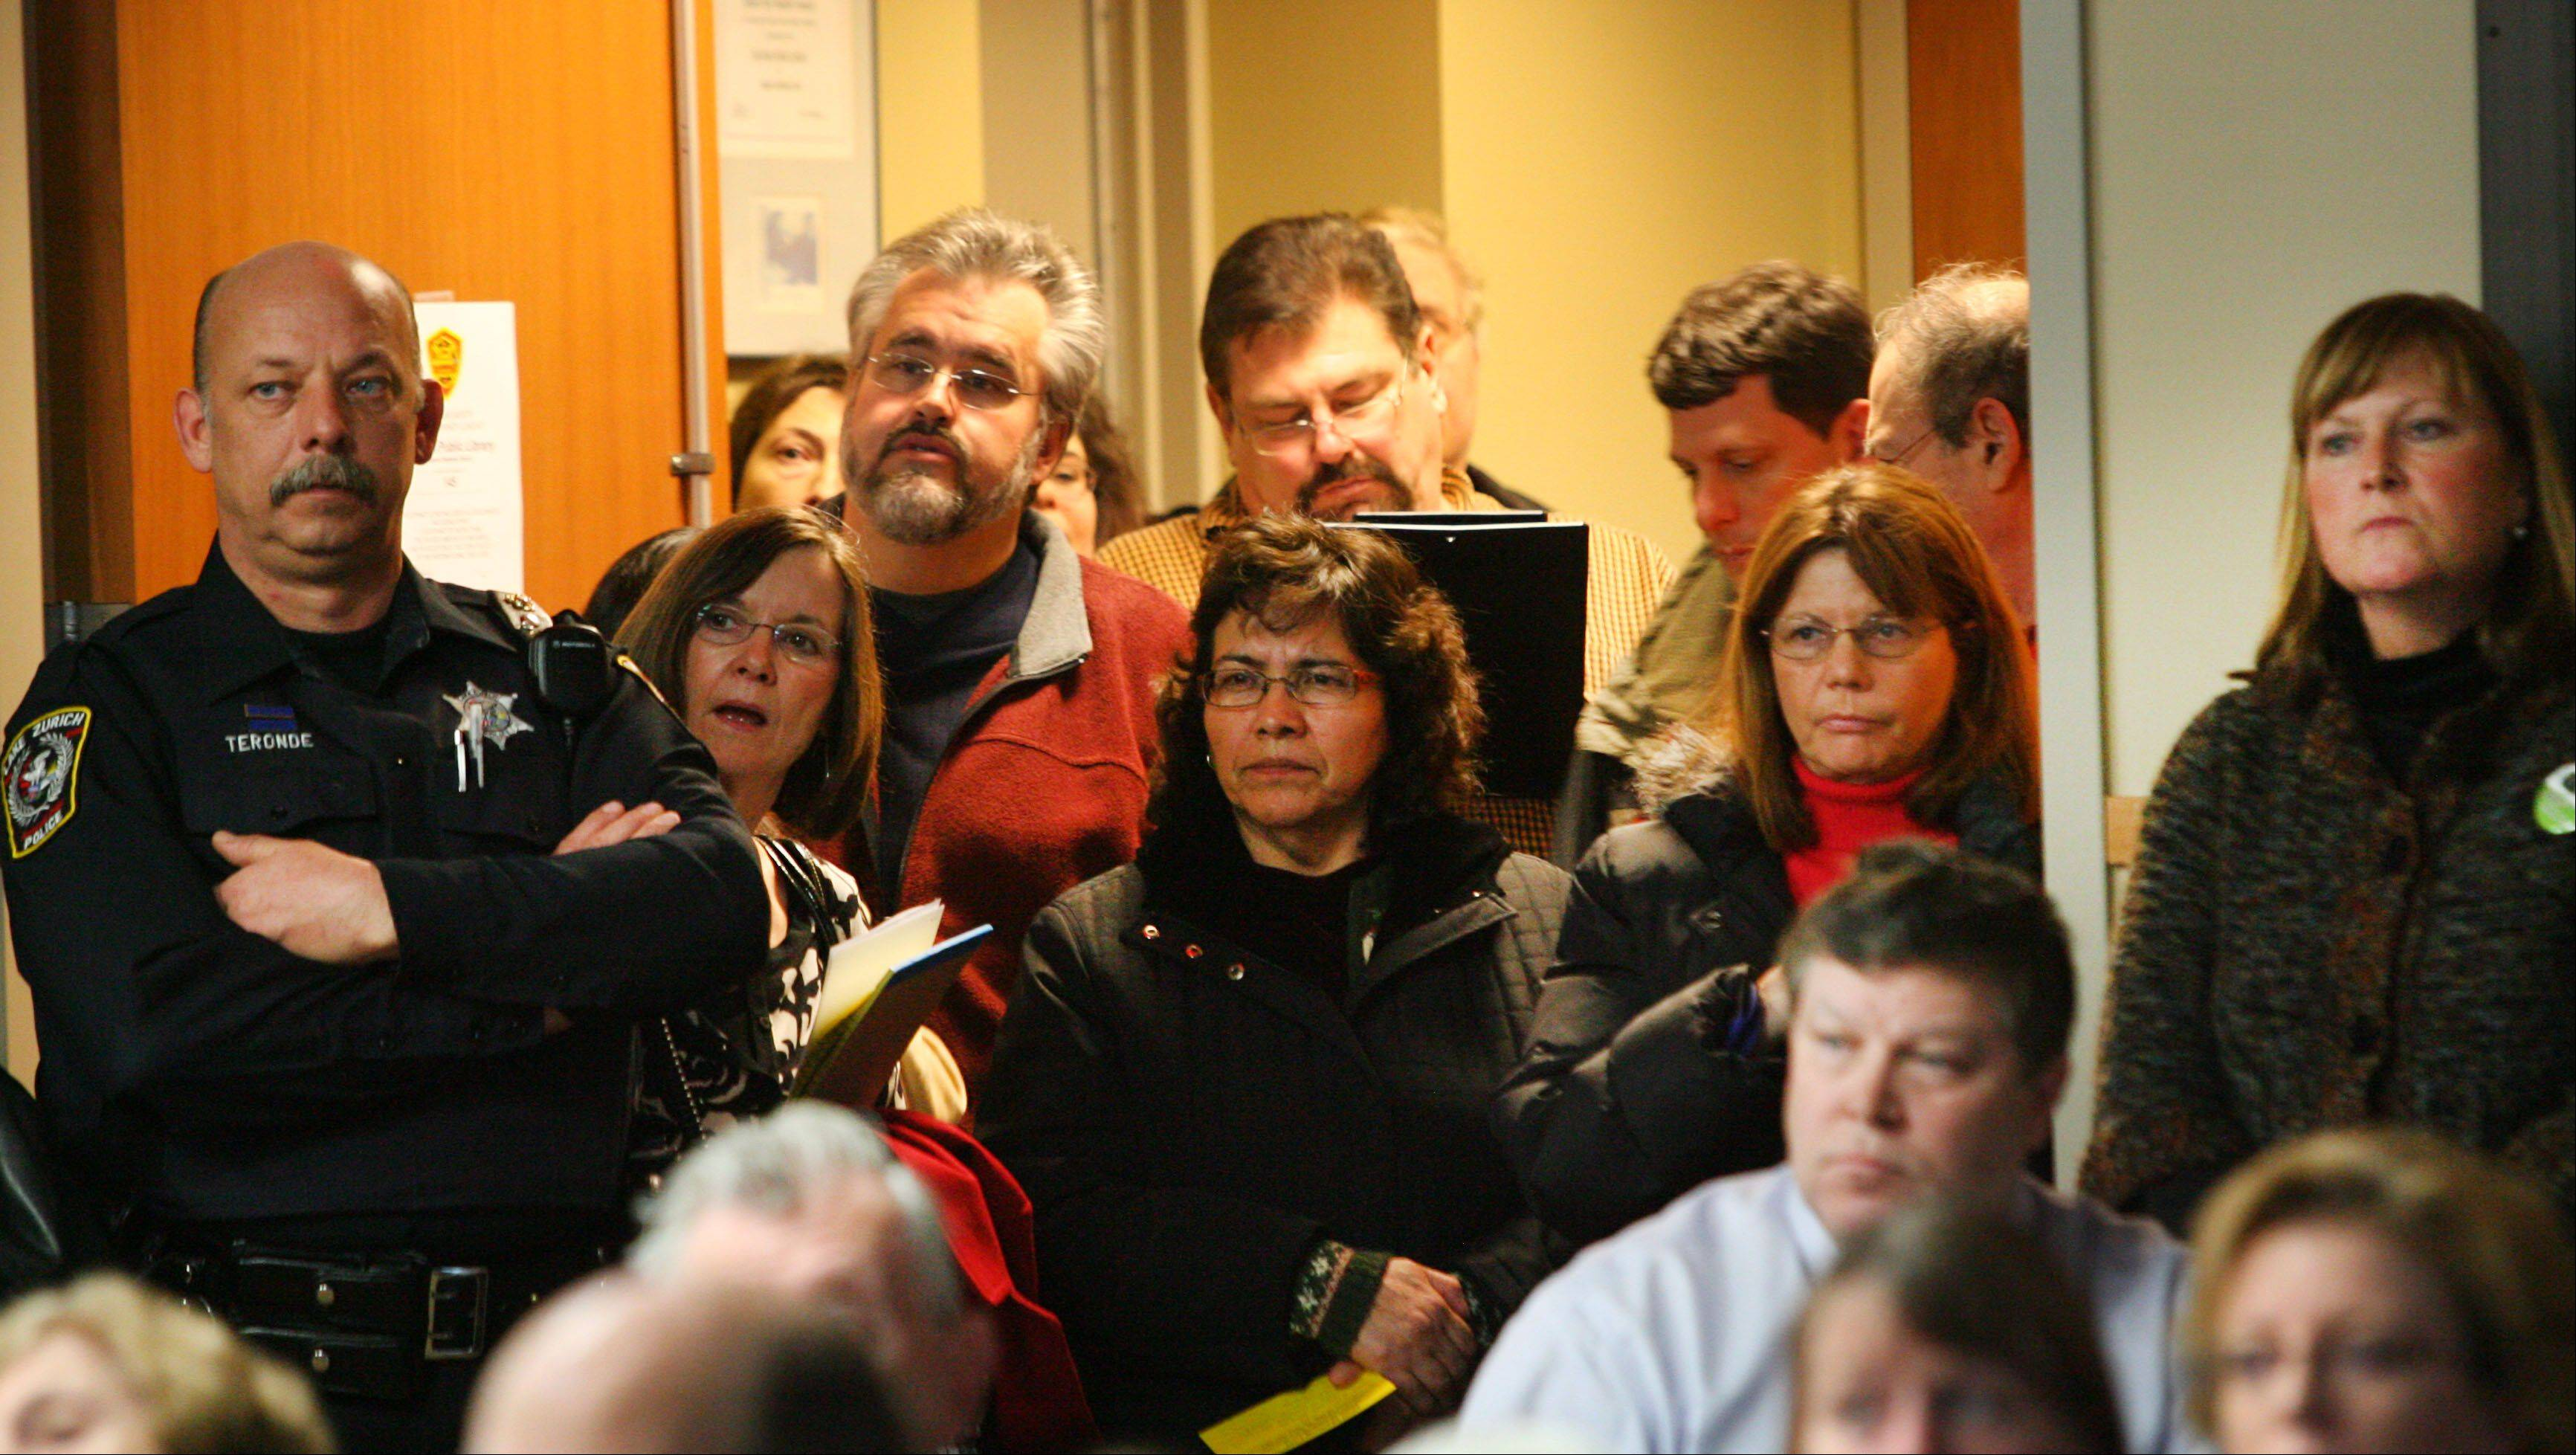 About 40 people had to stand in the hallway during a Lake County Regional Planning Commission meeting in February at Ela Area Public Library regarding the development of the Dimucci property.